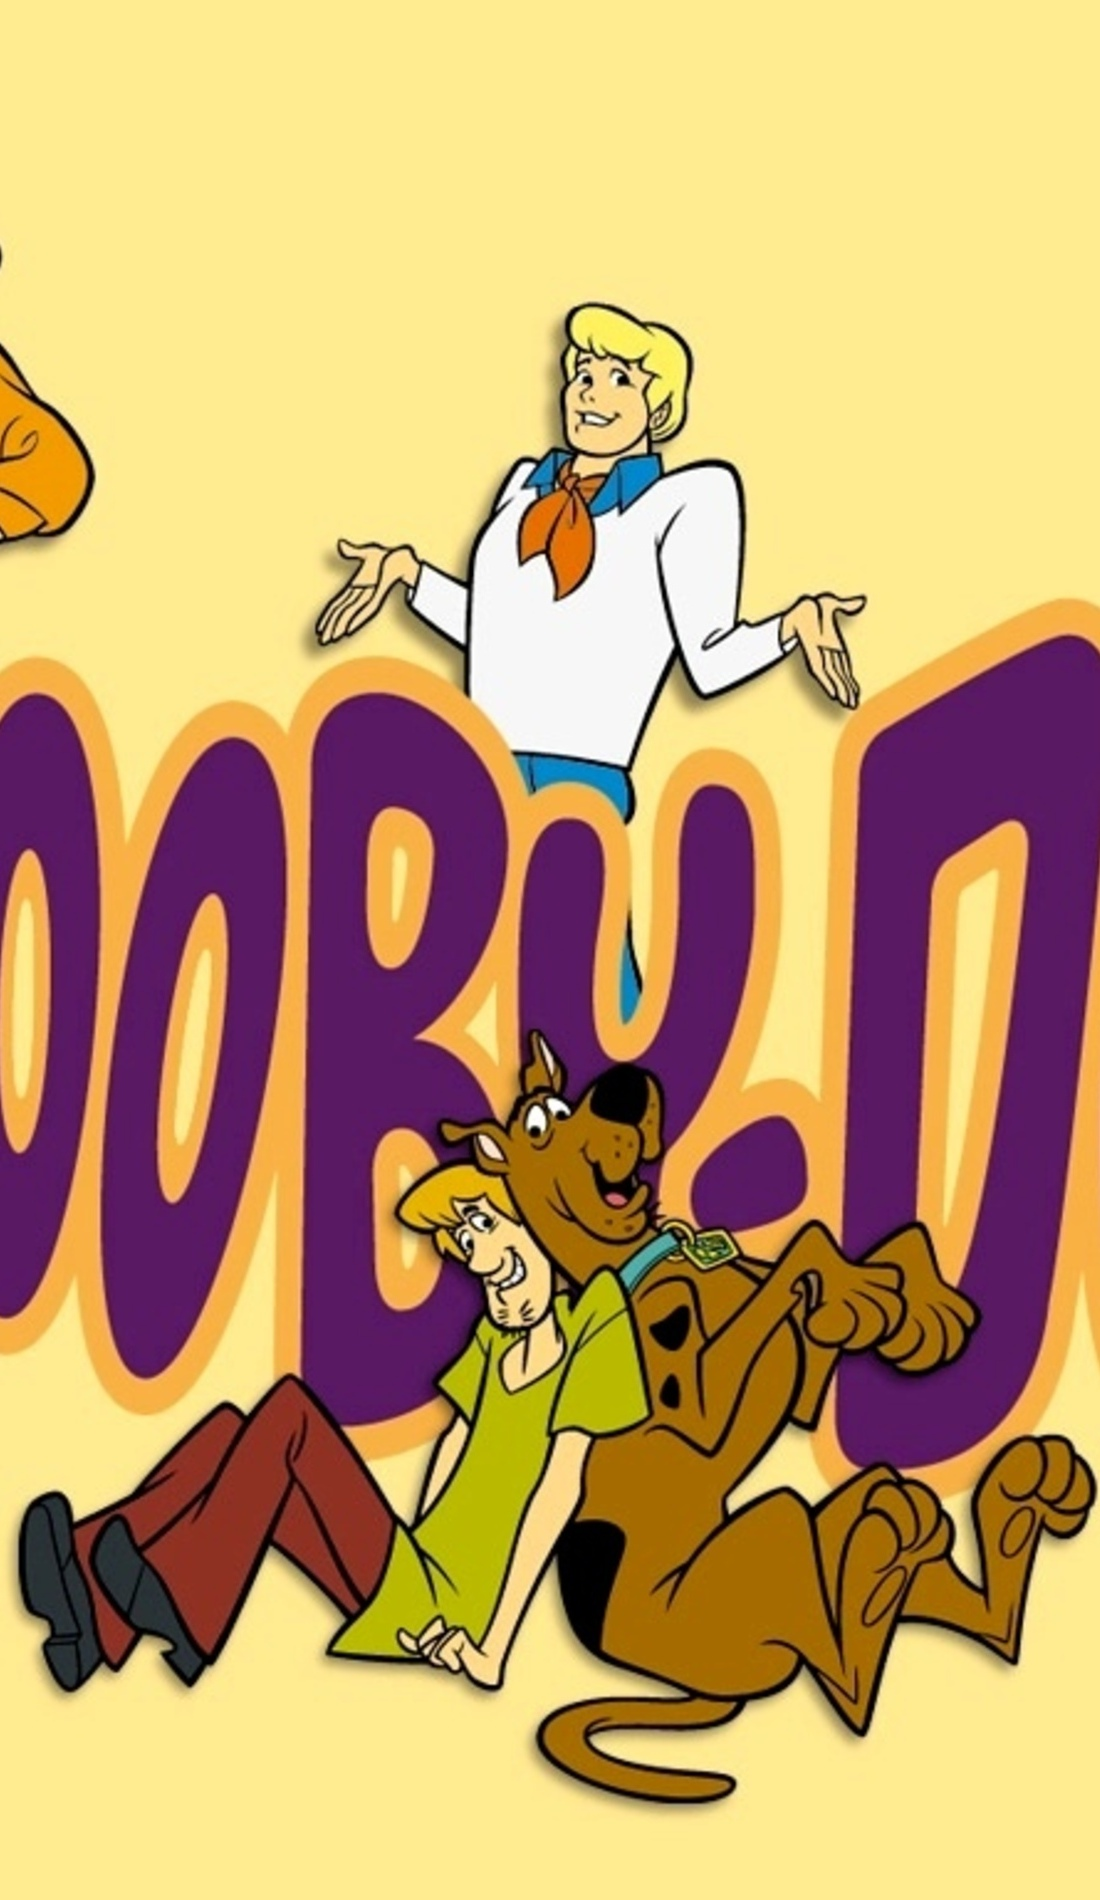 A Scooby Doo live event